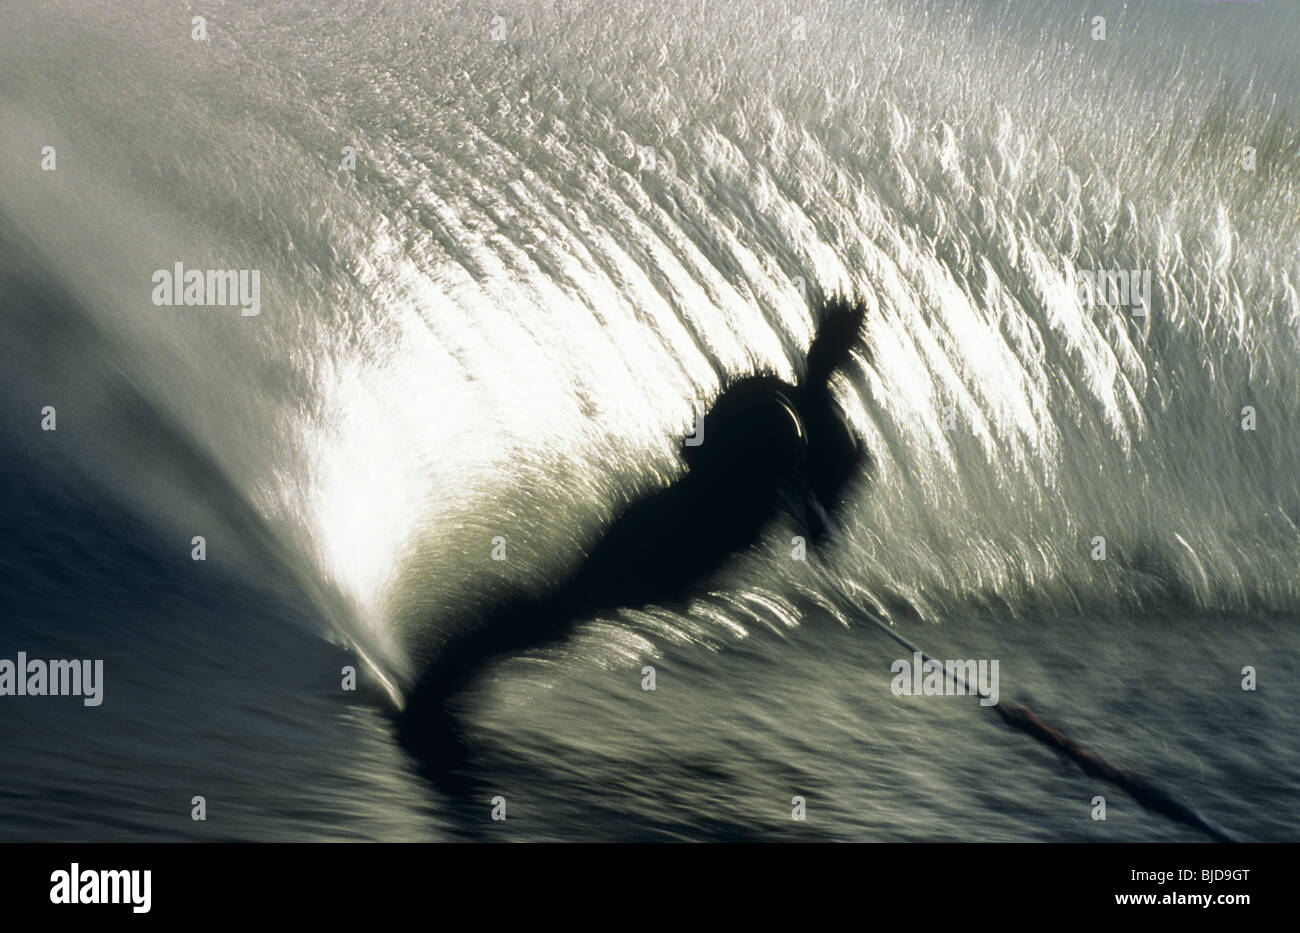 Water skier in action creates plume of water as he cuts back - Stock Image